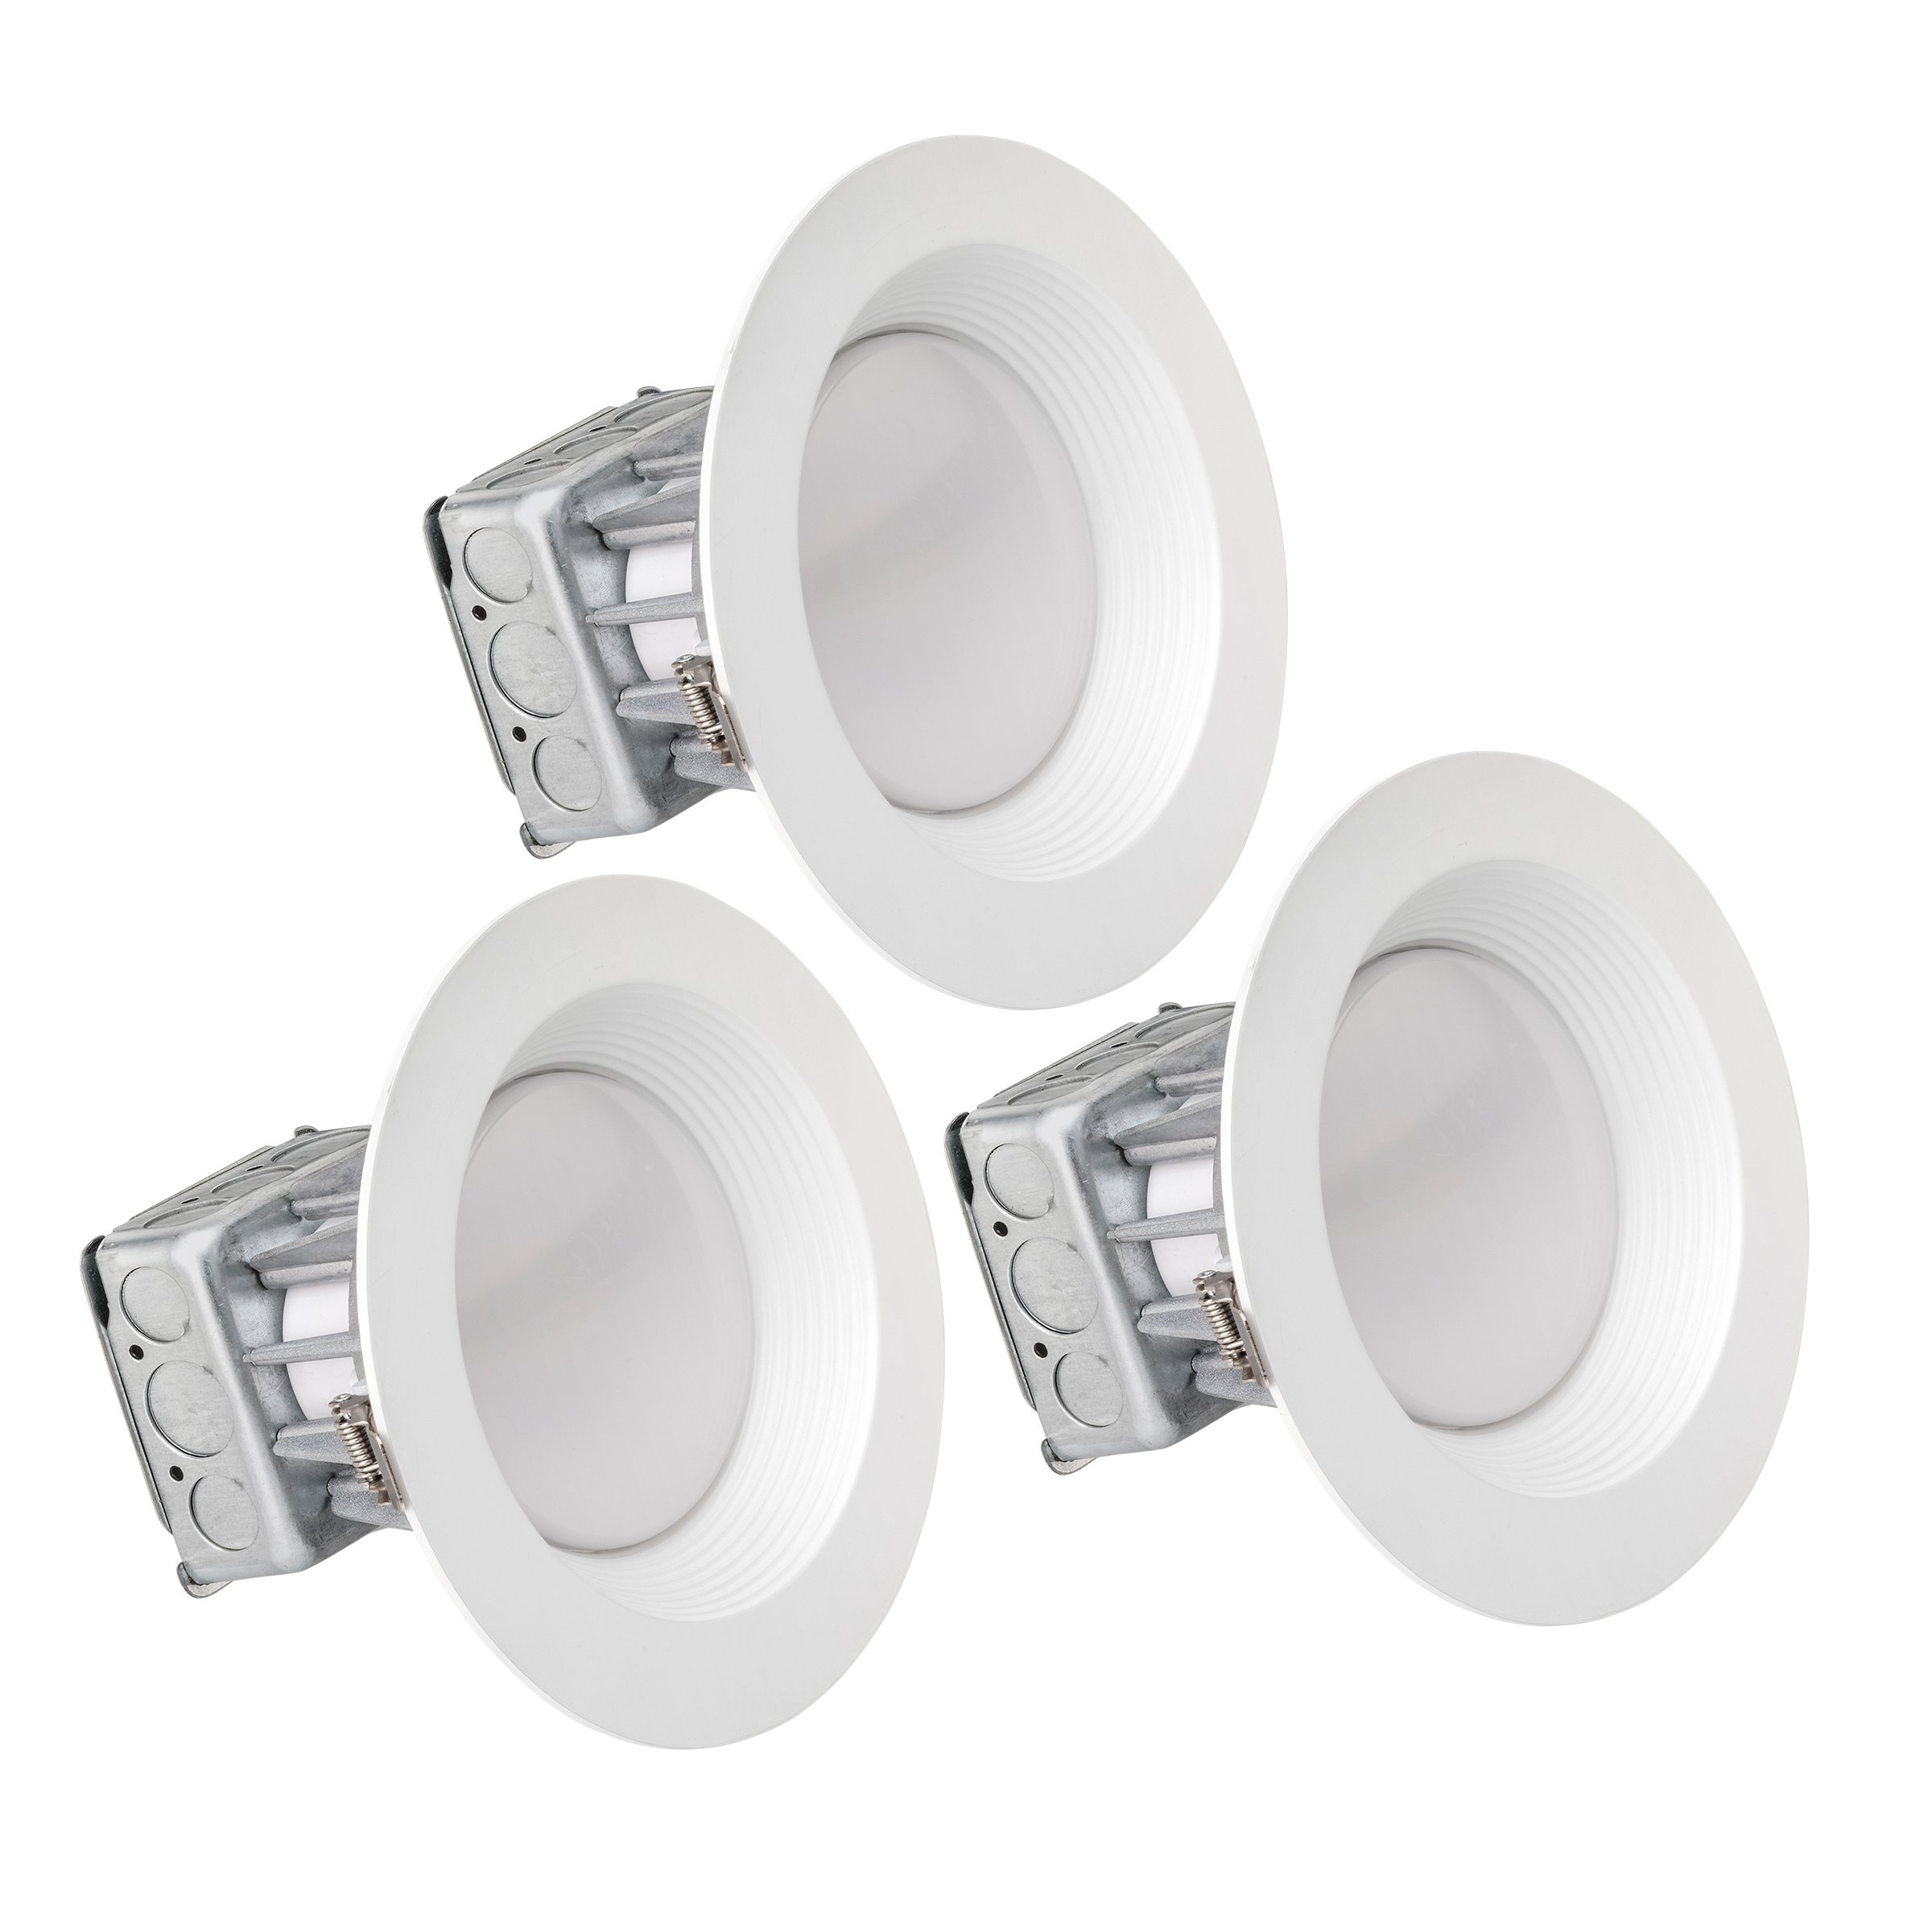 Pack of 3 LEDQuant 8 Inch Junction Box LED Downlight, 25W 150W Equivalent, 4000K Cool White, ENERGY STAR, 2050 Lumens, Wet Rated, Recessed Ceiling Light, 120V, No Can Needed, ETL (4000K (Cool White))